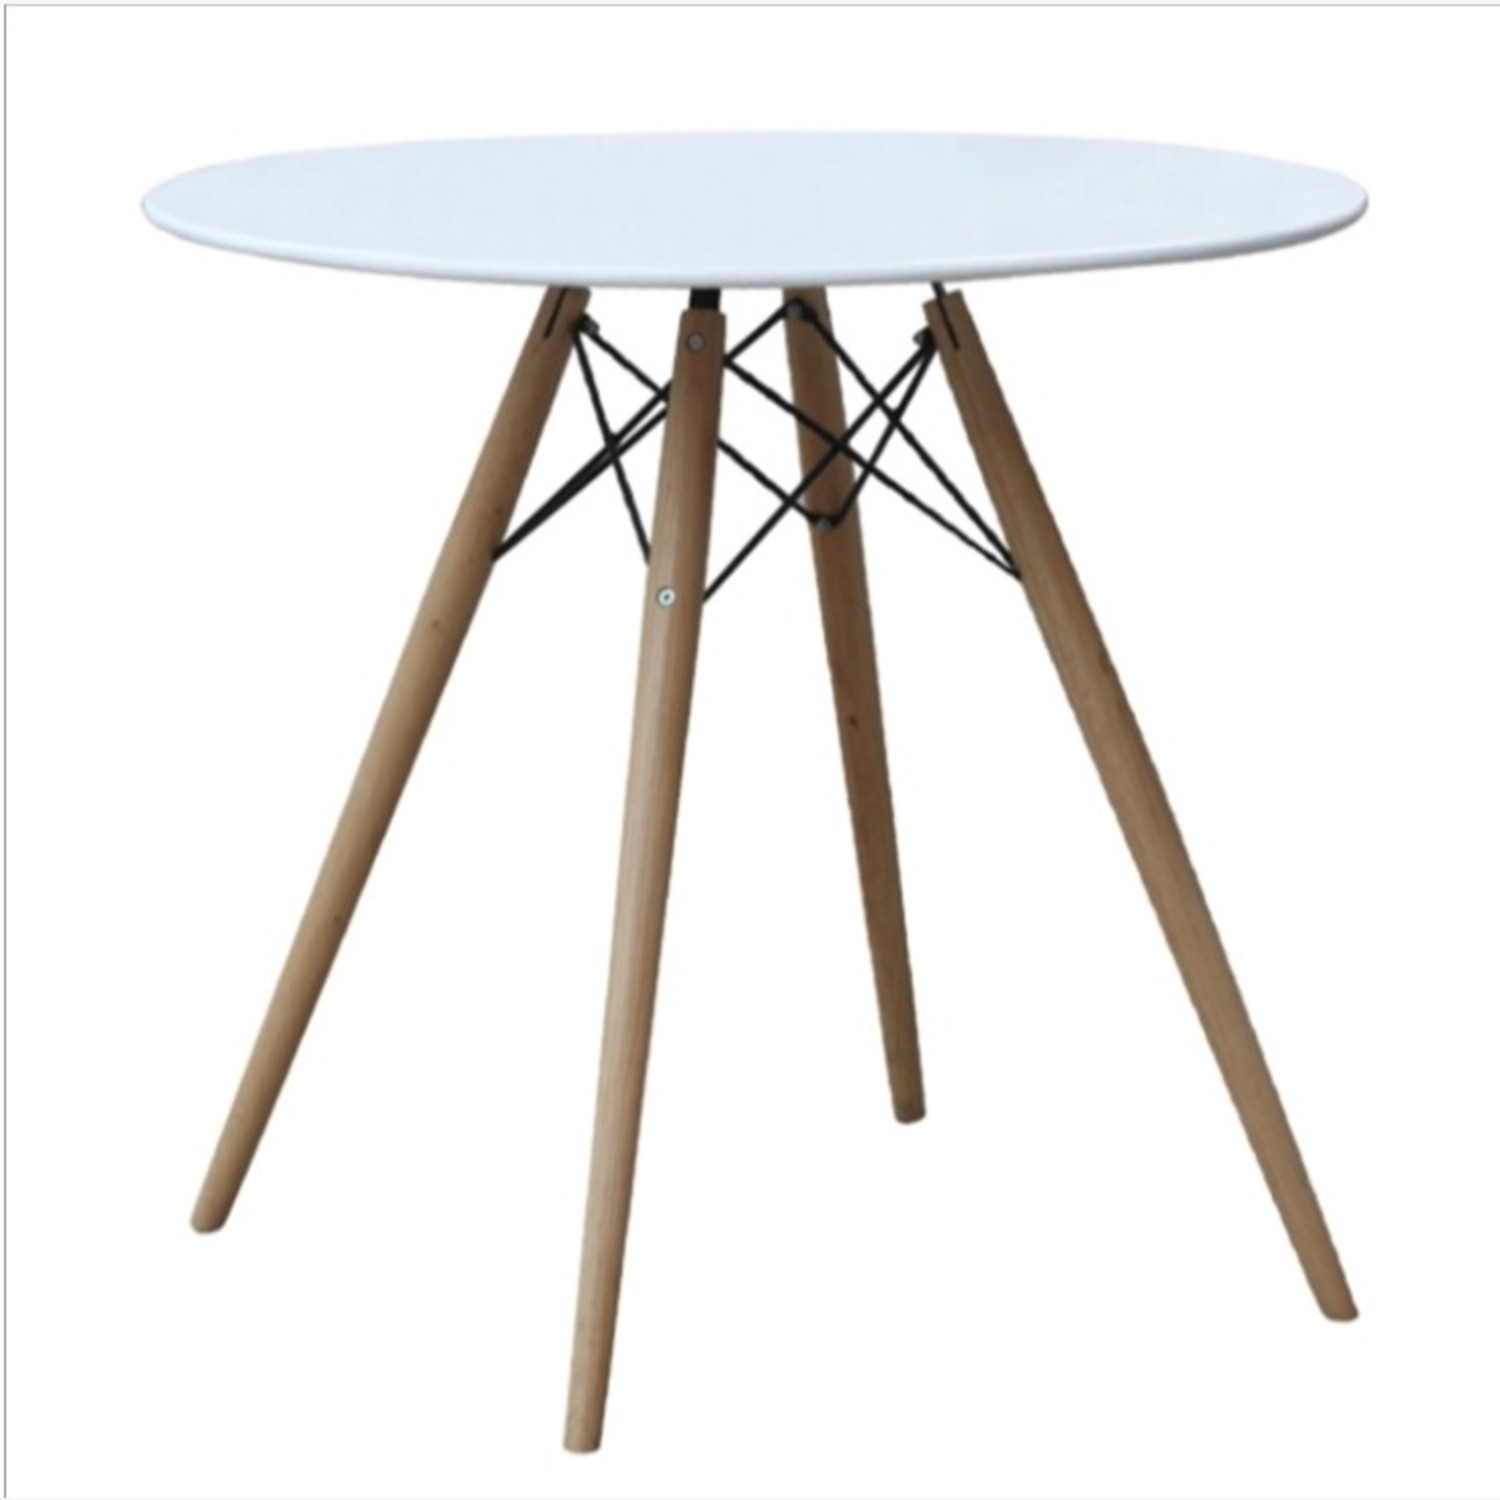 """48"""" Dining Table In White W/ Fiberglass Top - image-1"""